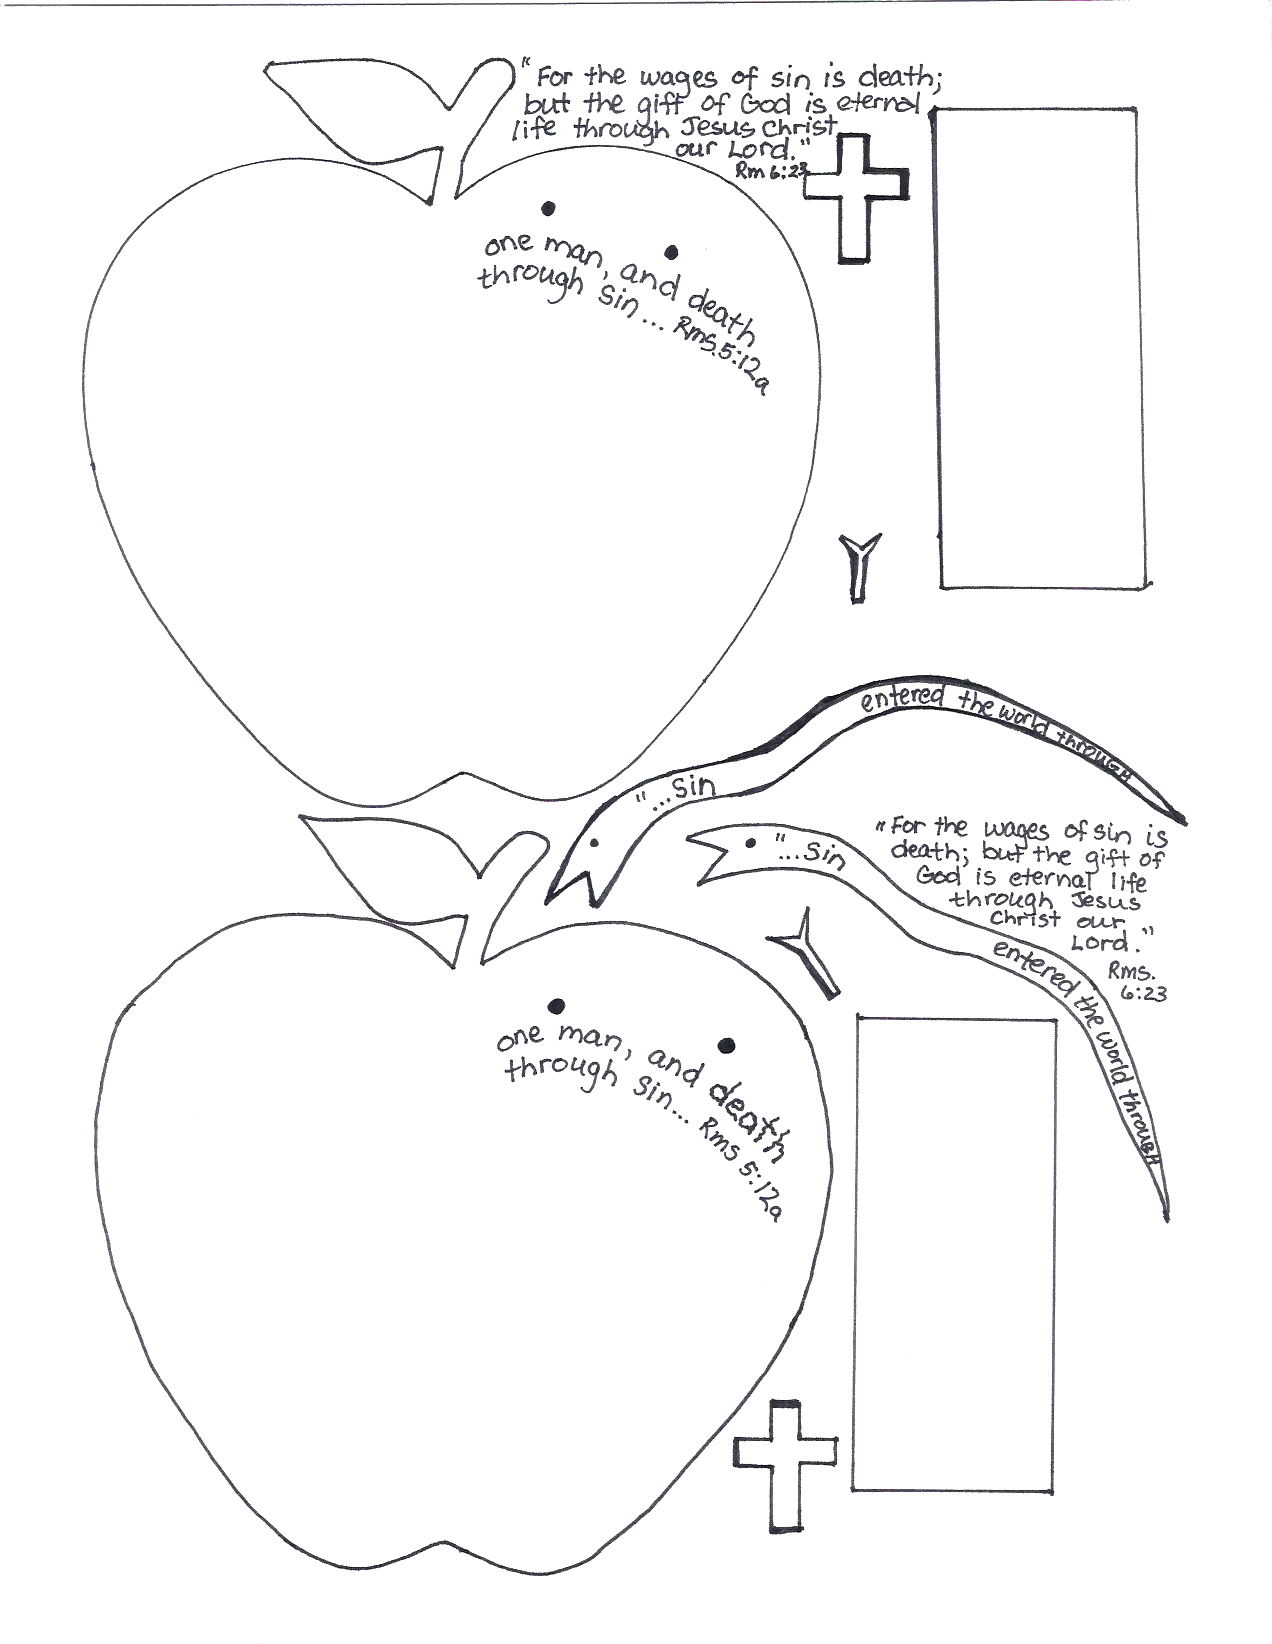 adam-and-eve-fall-worksheet.jpg 1,272×1,644 pixels